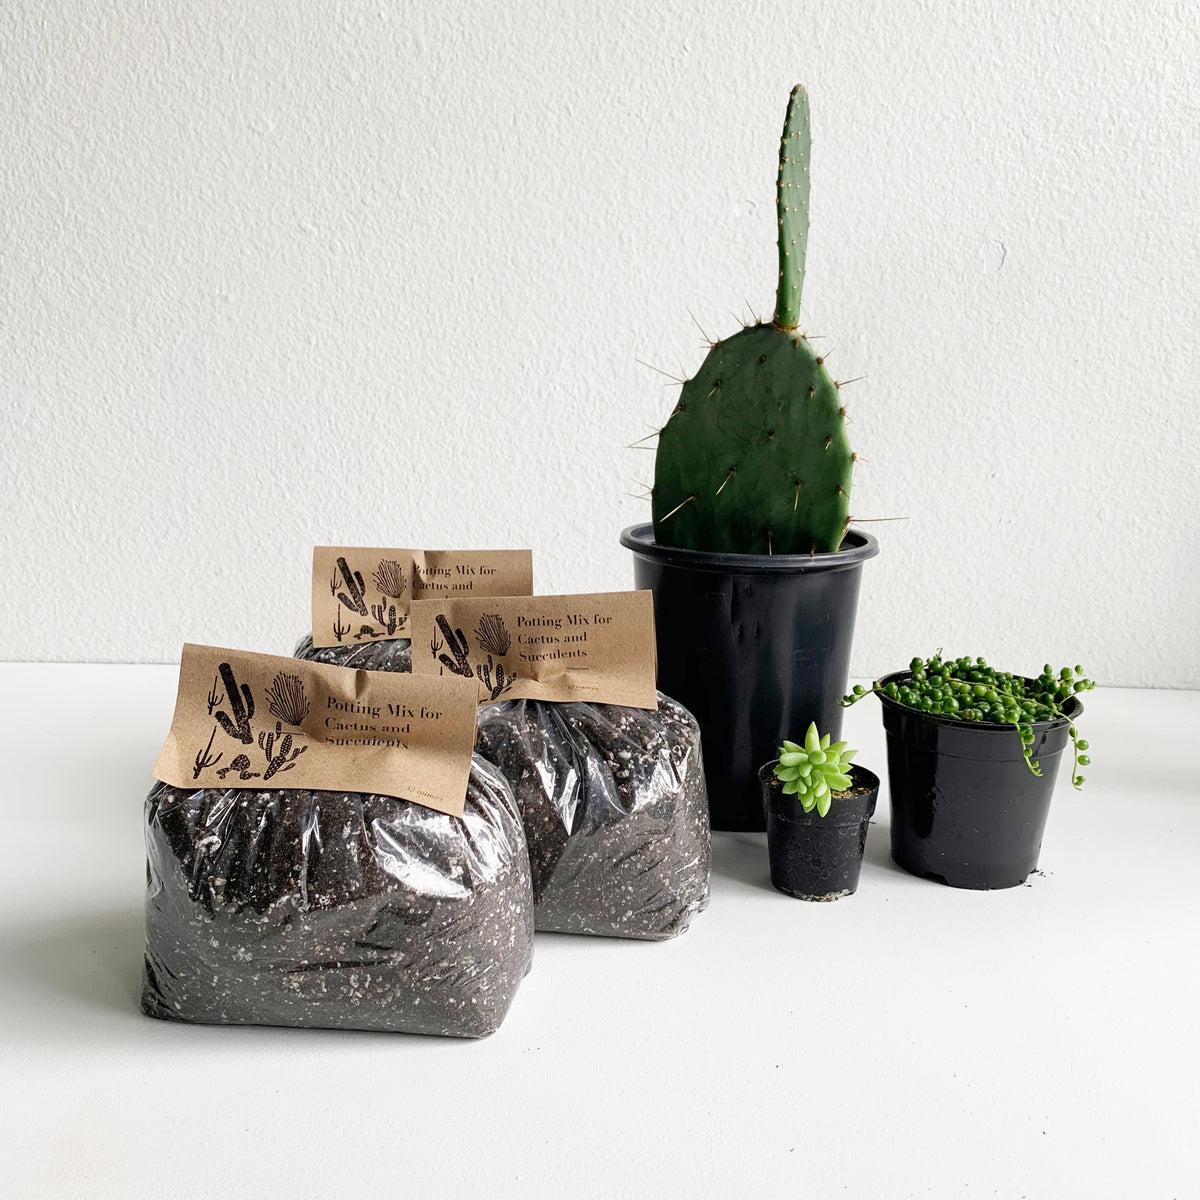 Cactus and Succulent Soil Potting Mix  **LOCAL Delivery or Pick-up Only**